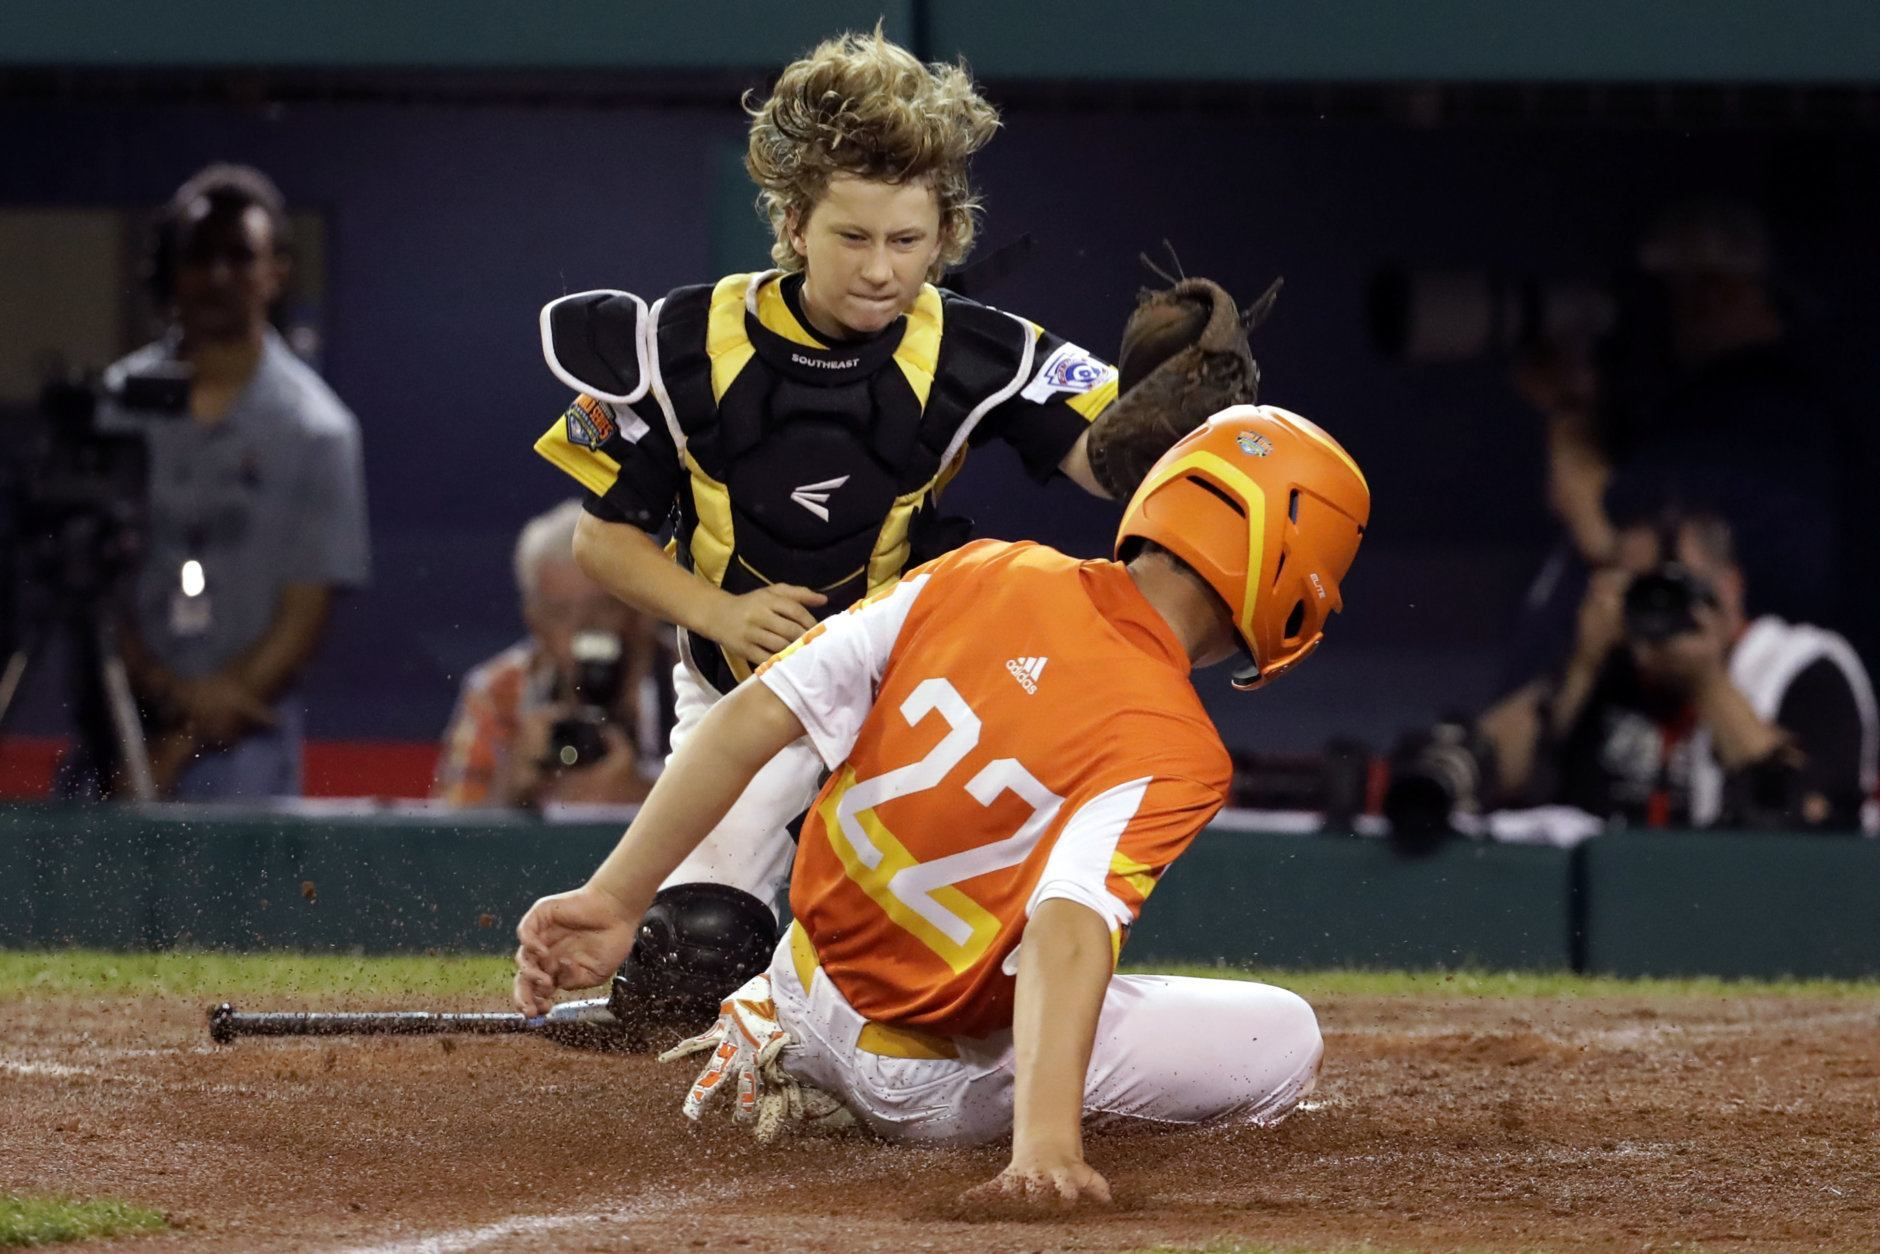 River Ridge, La.'s Reece Roussel (22) scores ahead of the tag by South Riding, Va.'s Noah Culpepper during the third inning of a baseball game at the Little League World Series in South Williamsport, Pa., Thursday, Aug. 22, 2019. (AP Photo/Gene J. Puskar)